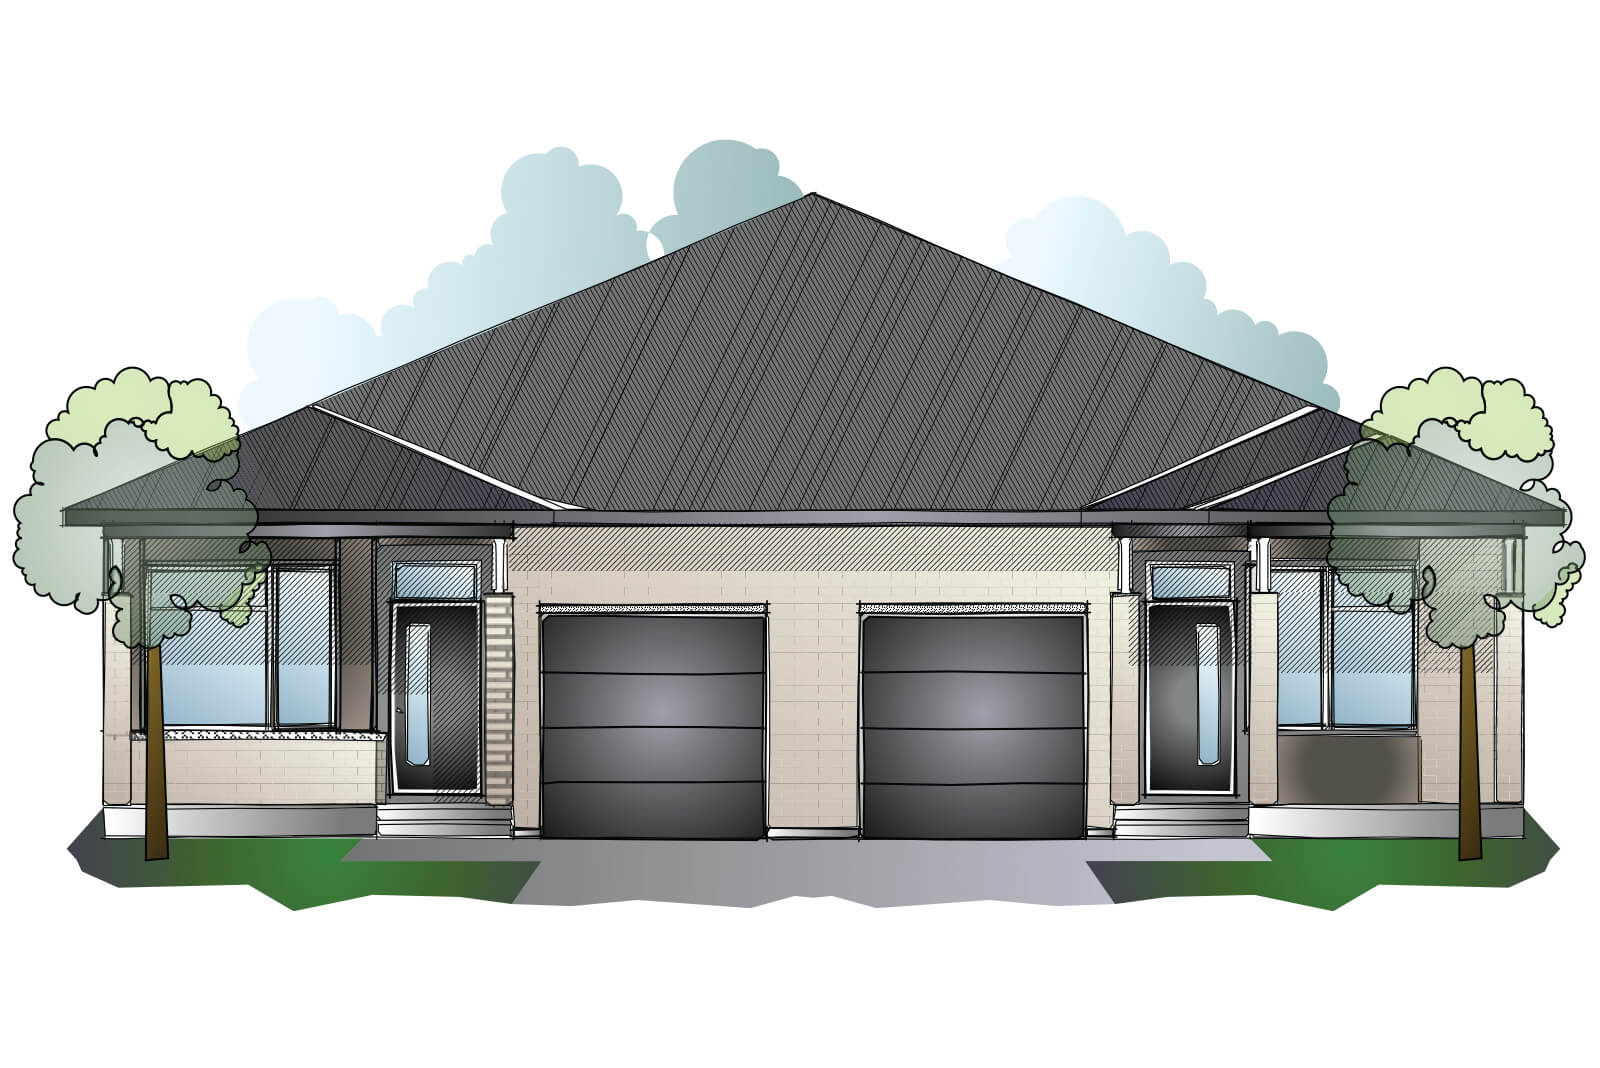 New Ottawa Single Family Home Quick Possession Bryant (Lot 185) in Millers Crossing in Carleton Place, located at 158 Rathwell Street Built By Cardel Homes Ottawa